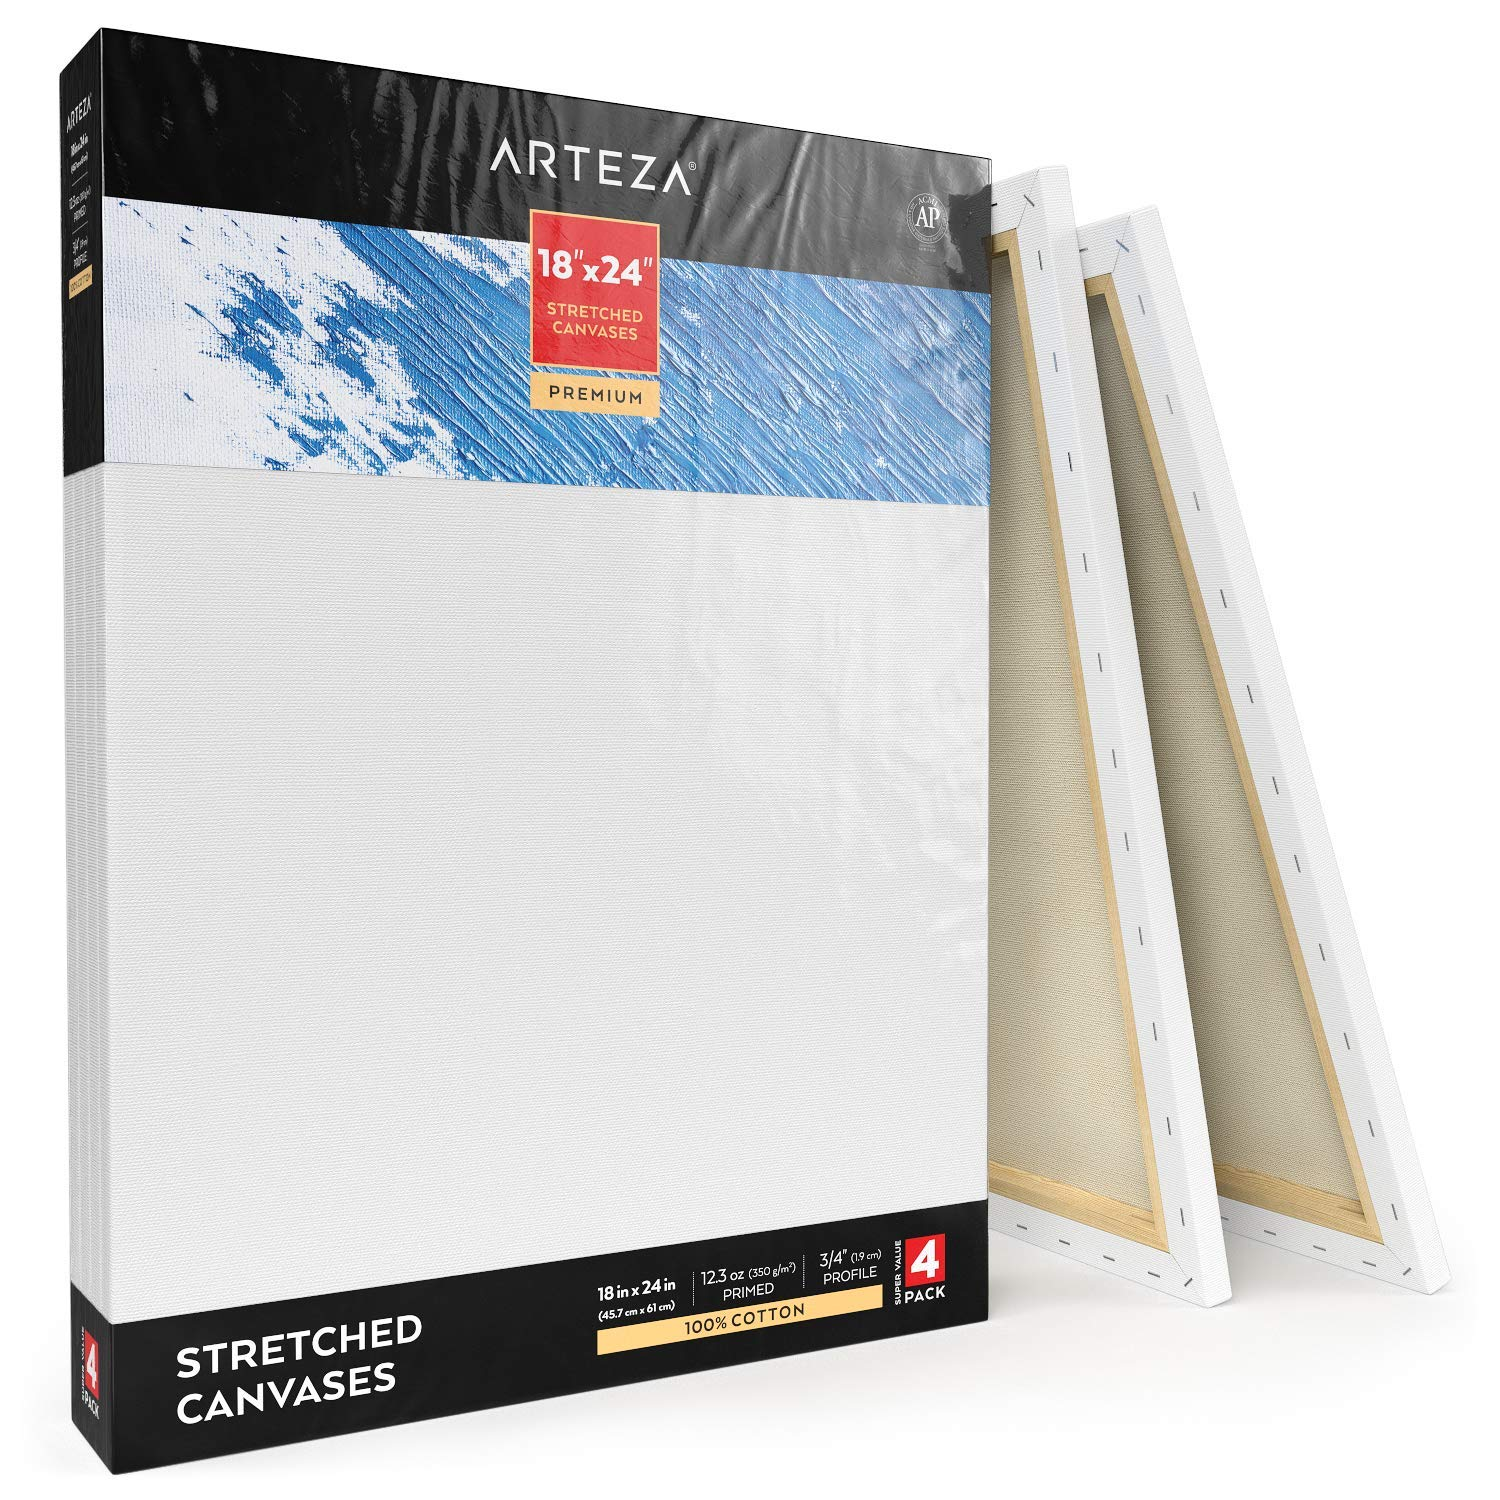 Arteza 18x24'' Professional Stretched White Blank Canvas, Bulk Pack of 4, Primed, 100% Cotton for Painting, Acrylic Pouring, Oil Paint & Wet Art Media, Canvases for Artist, Hobby Painters & Beginner